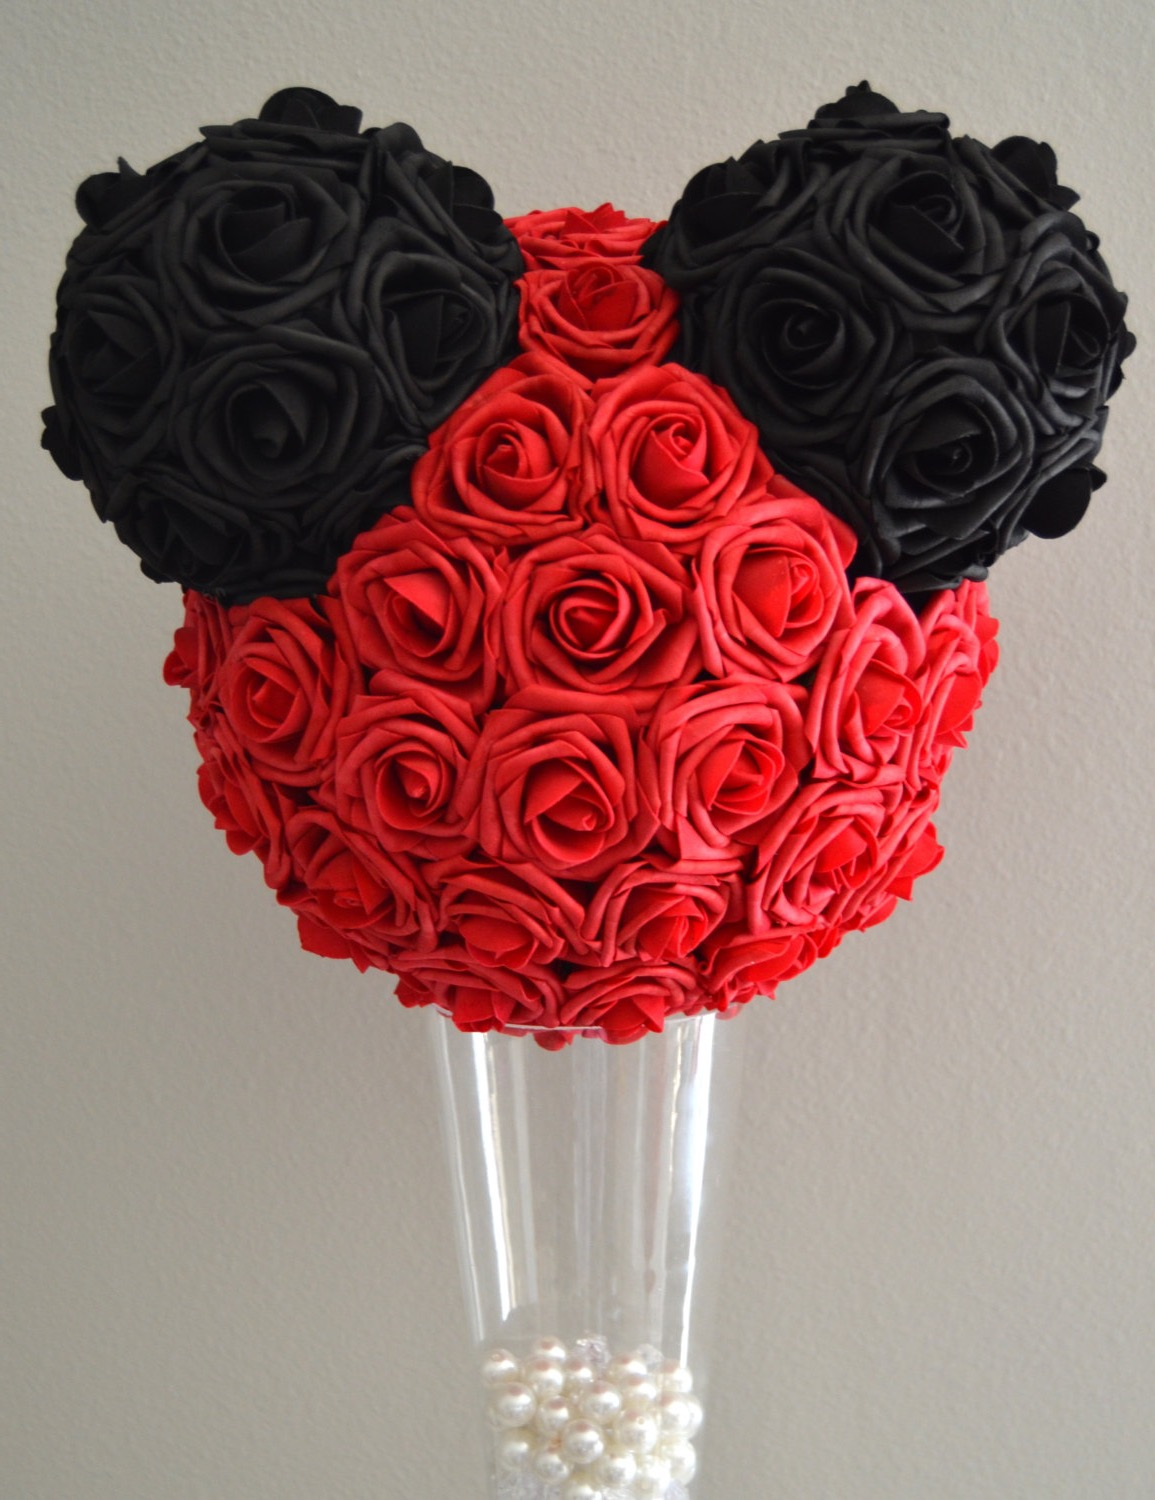 Red And Black Flower With Silver Pearl Centerpieces For Wedding (Image 5 of 15)